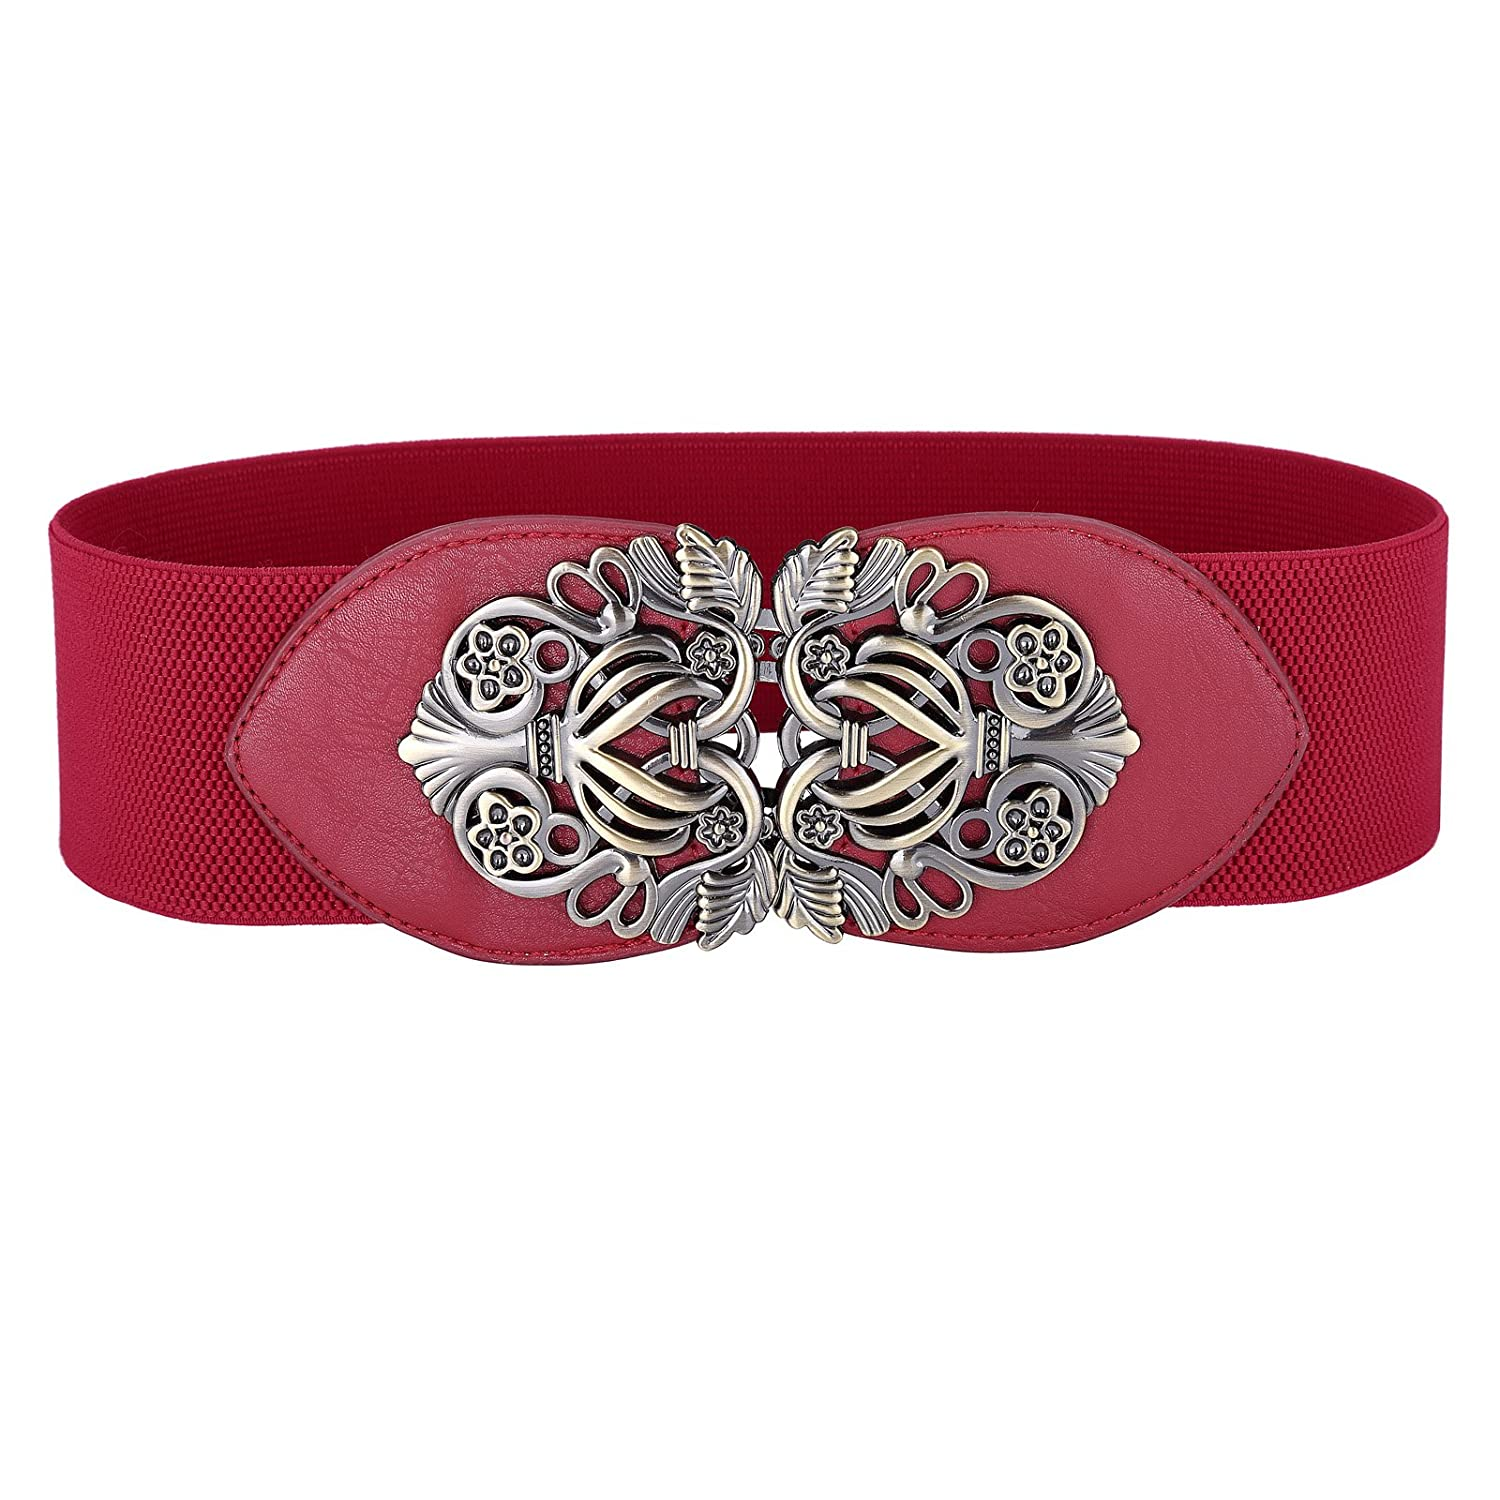 GRACE KARIN Women's Elastic Stretch Wide Vintage Waist Belt